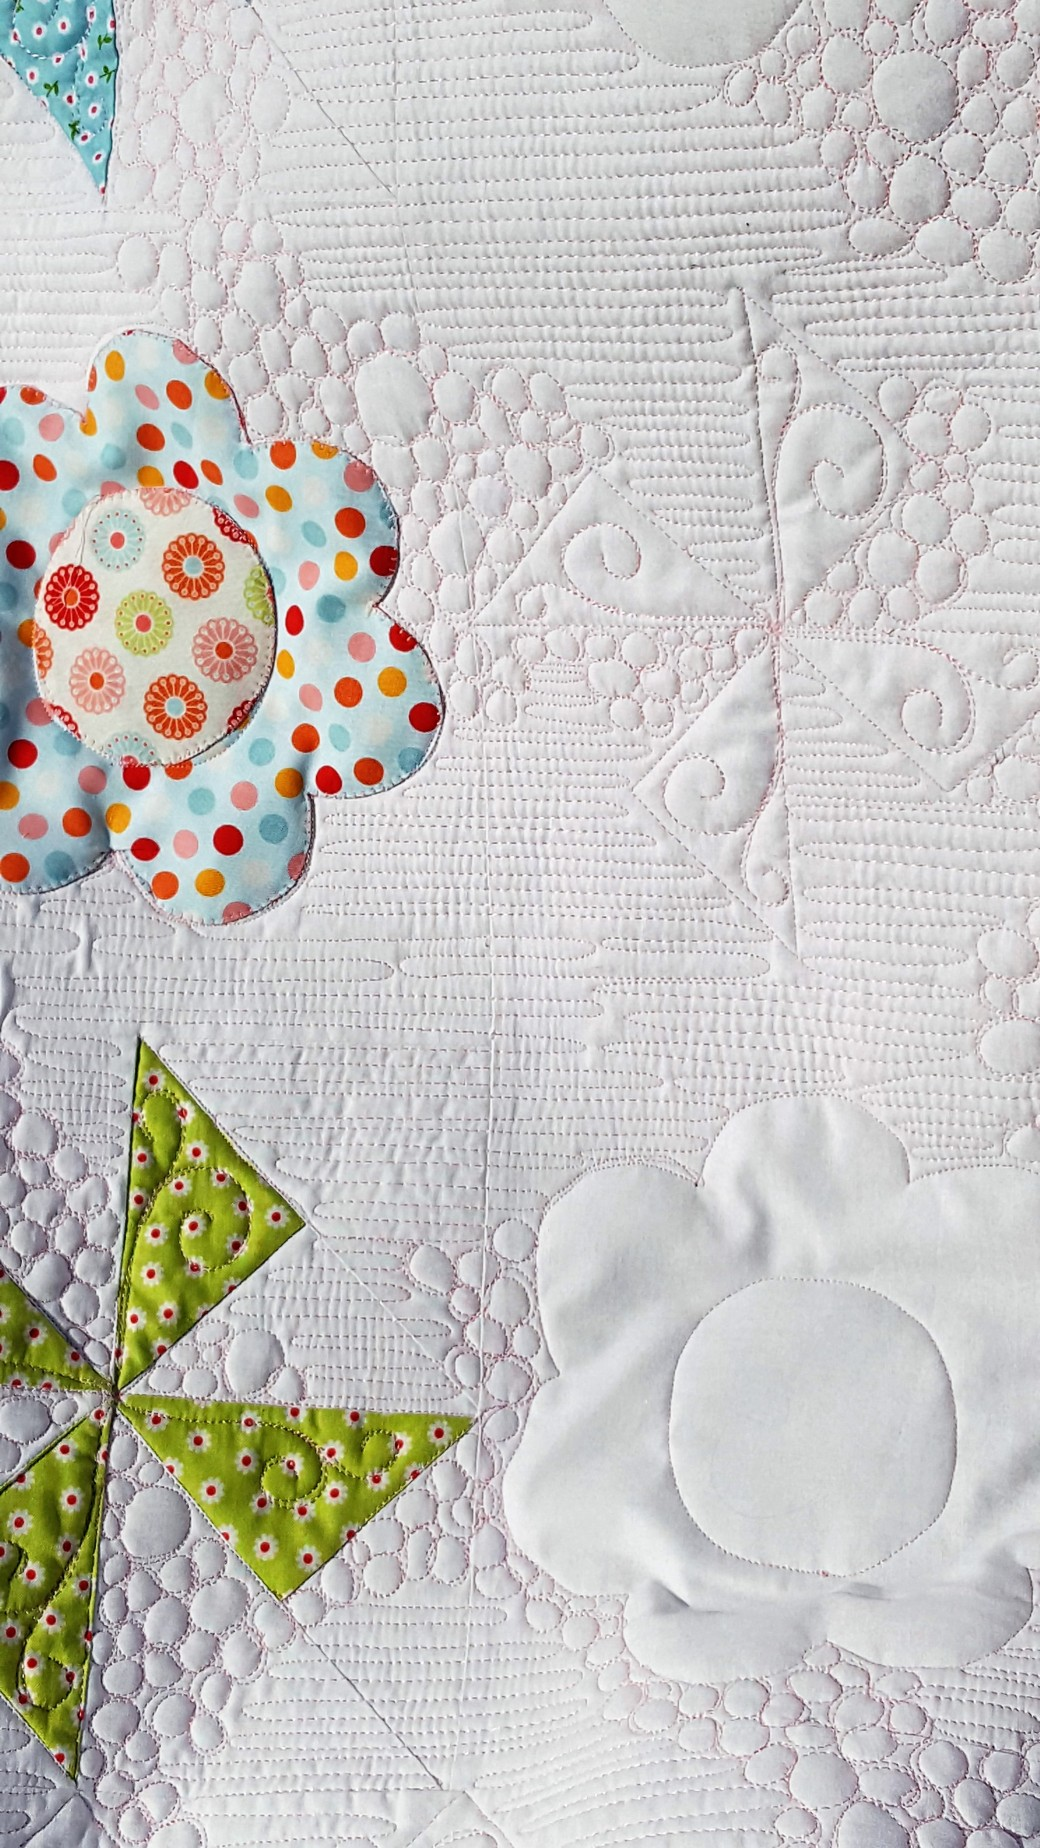 quilting-close-up